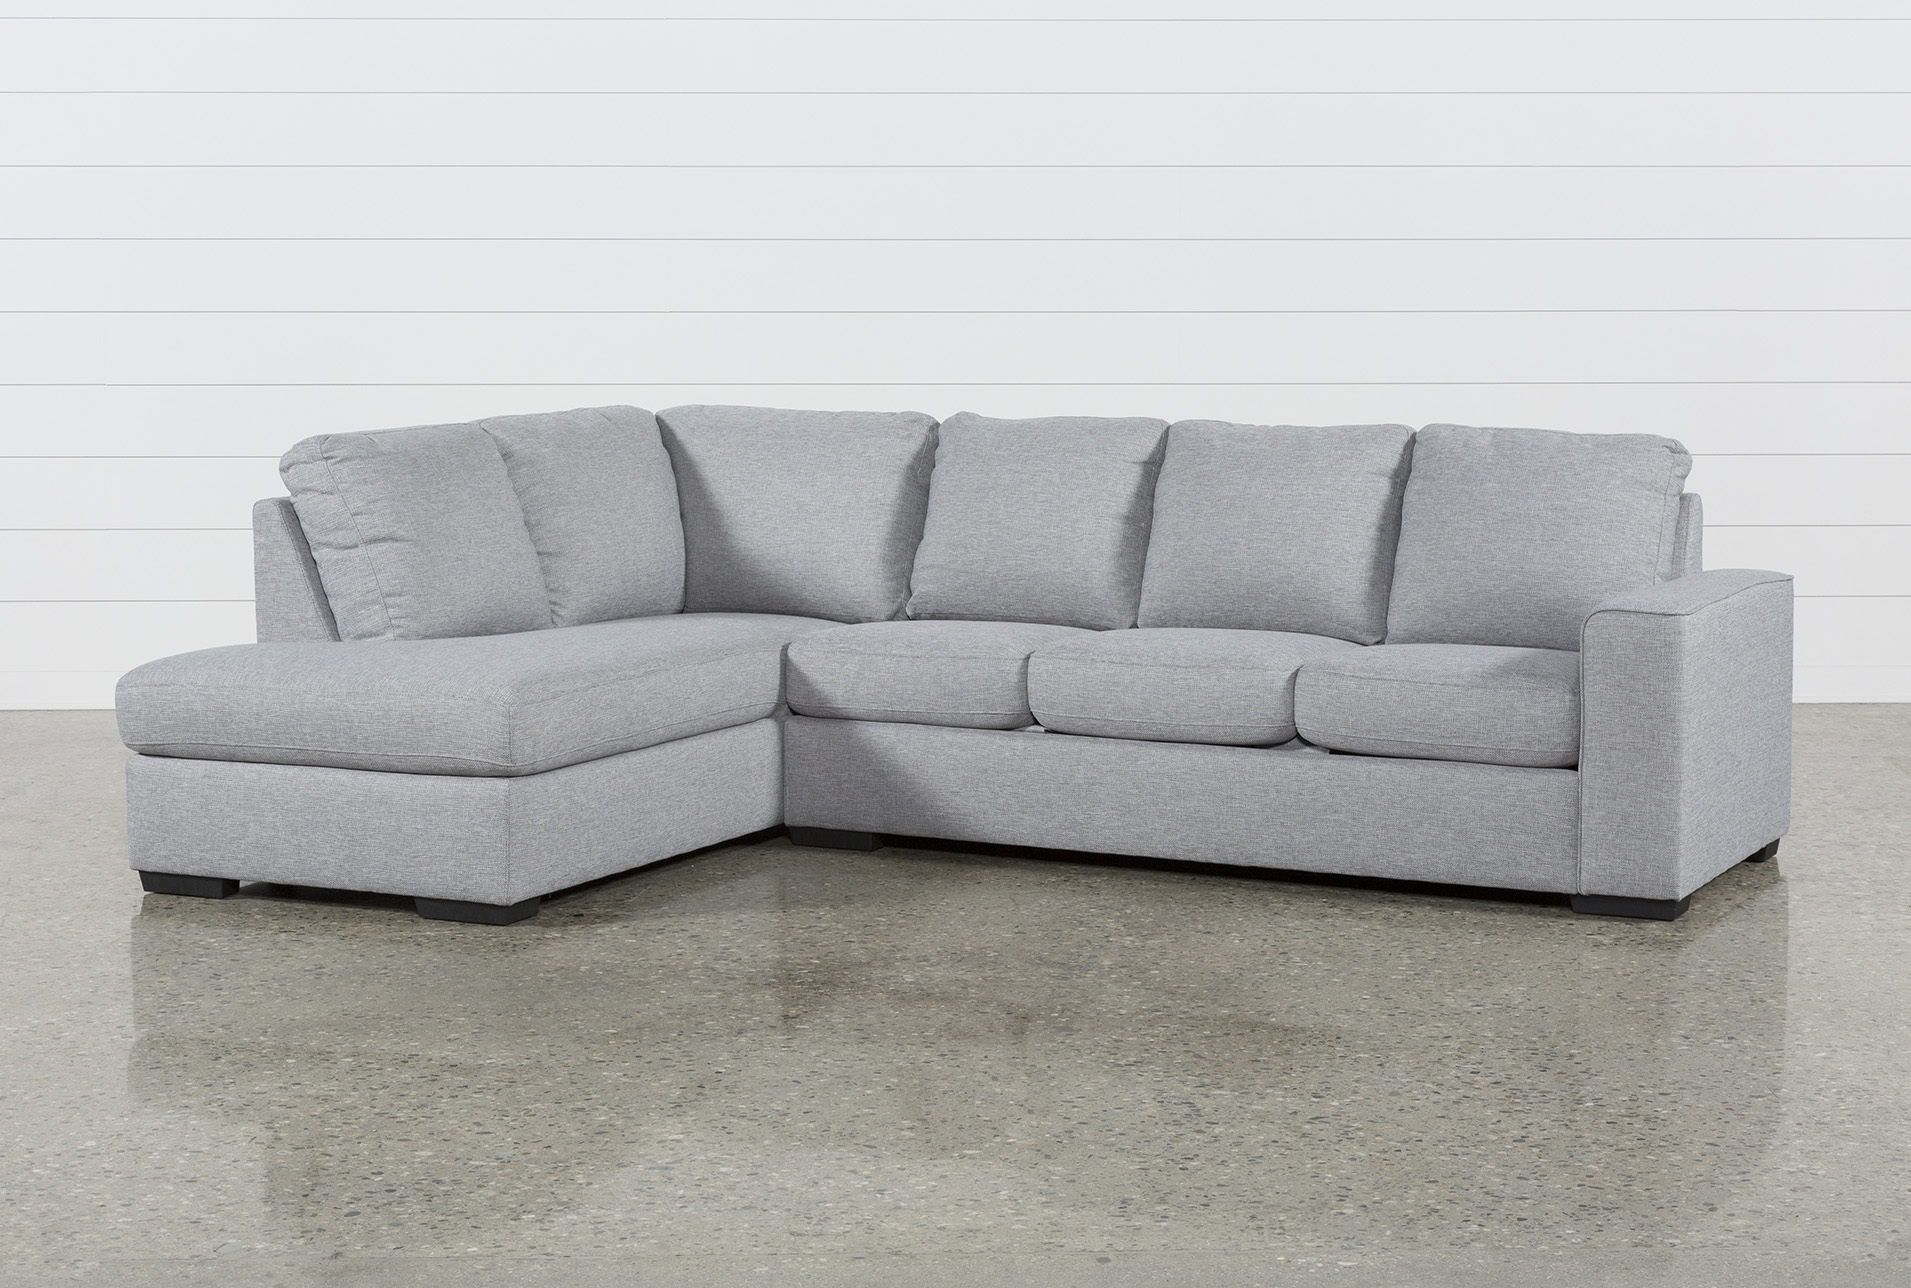 Lucy Grey 2 Piece Sleeper Sectional W/Laf Chaise